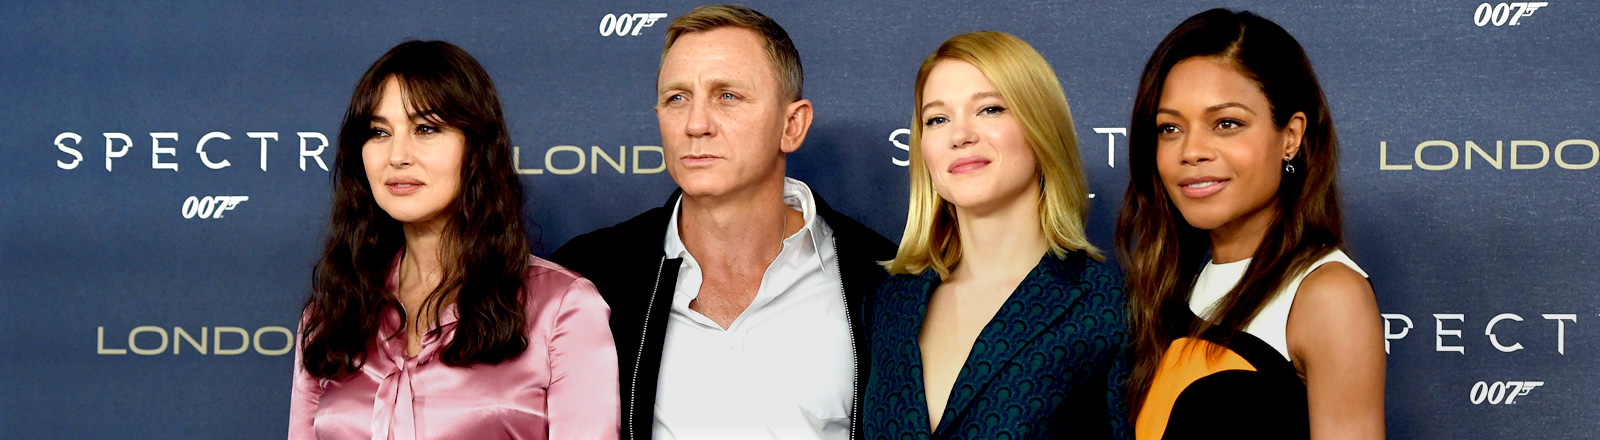 Italian actress Monica Bellucci, British actor Daniel Craig, French actress Lea Seydoux and British actress Naomi Harris pose for photographers during a photocall to unveil the new James Bond film 'Spectre' at a hotel in Central London